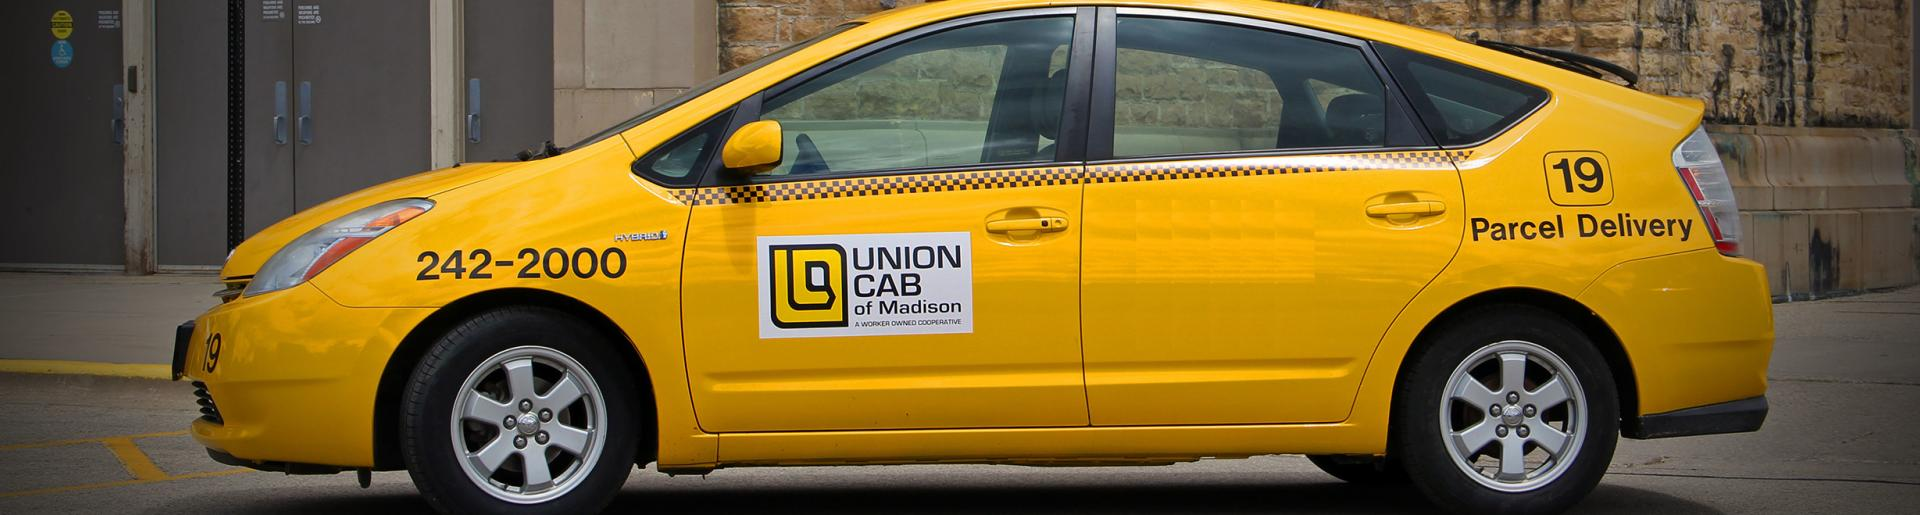 A Union Cab taxi parked in front of the Camp Randall Fieldhouse